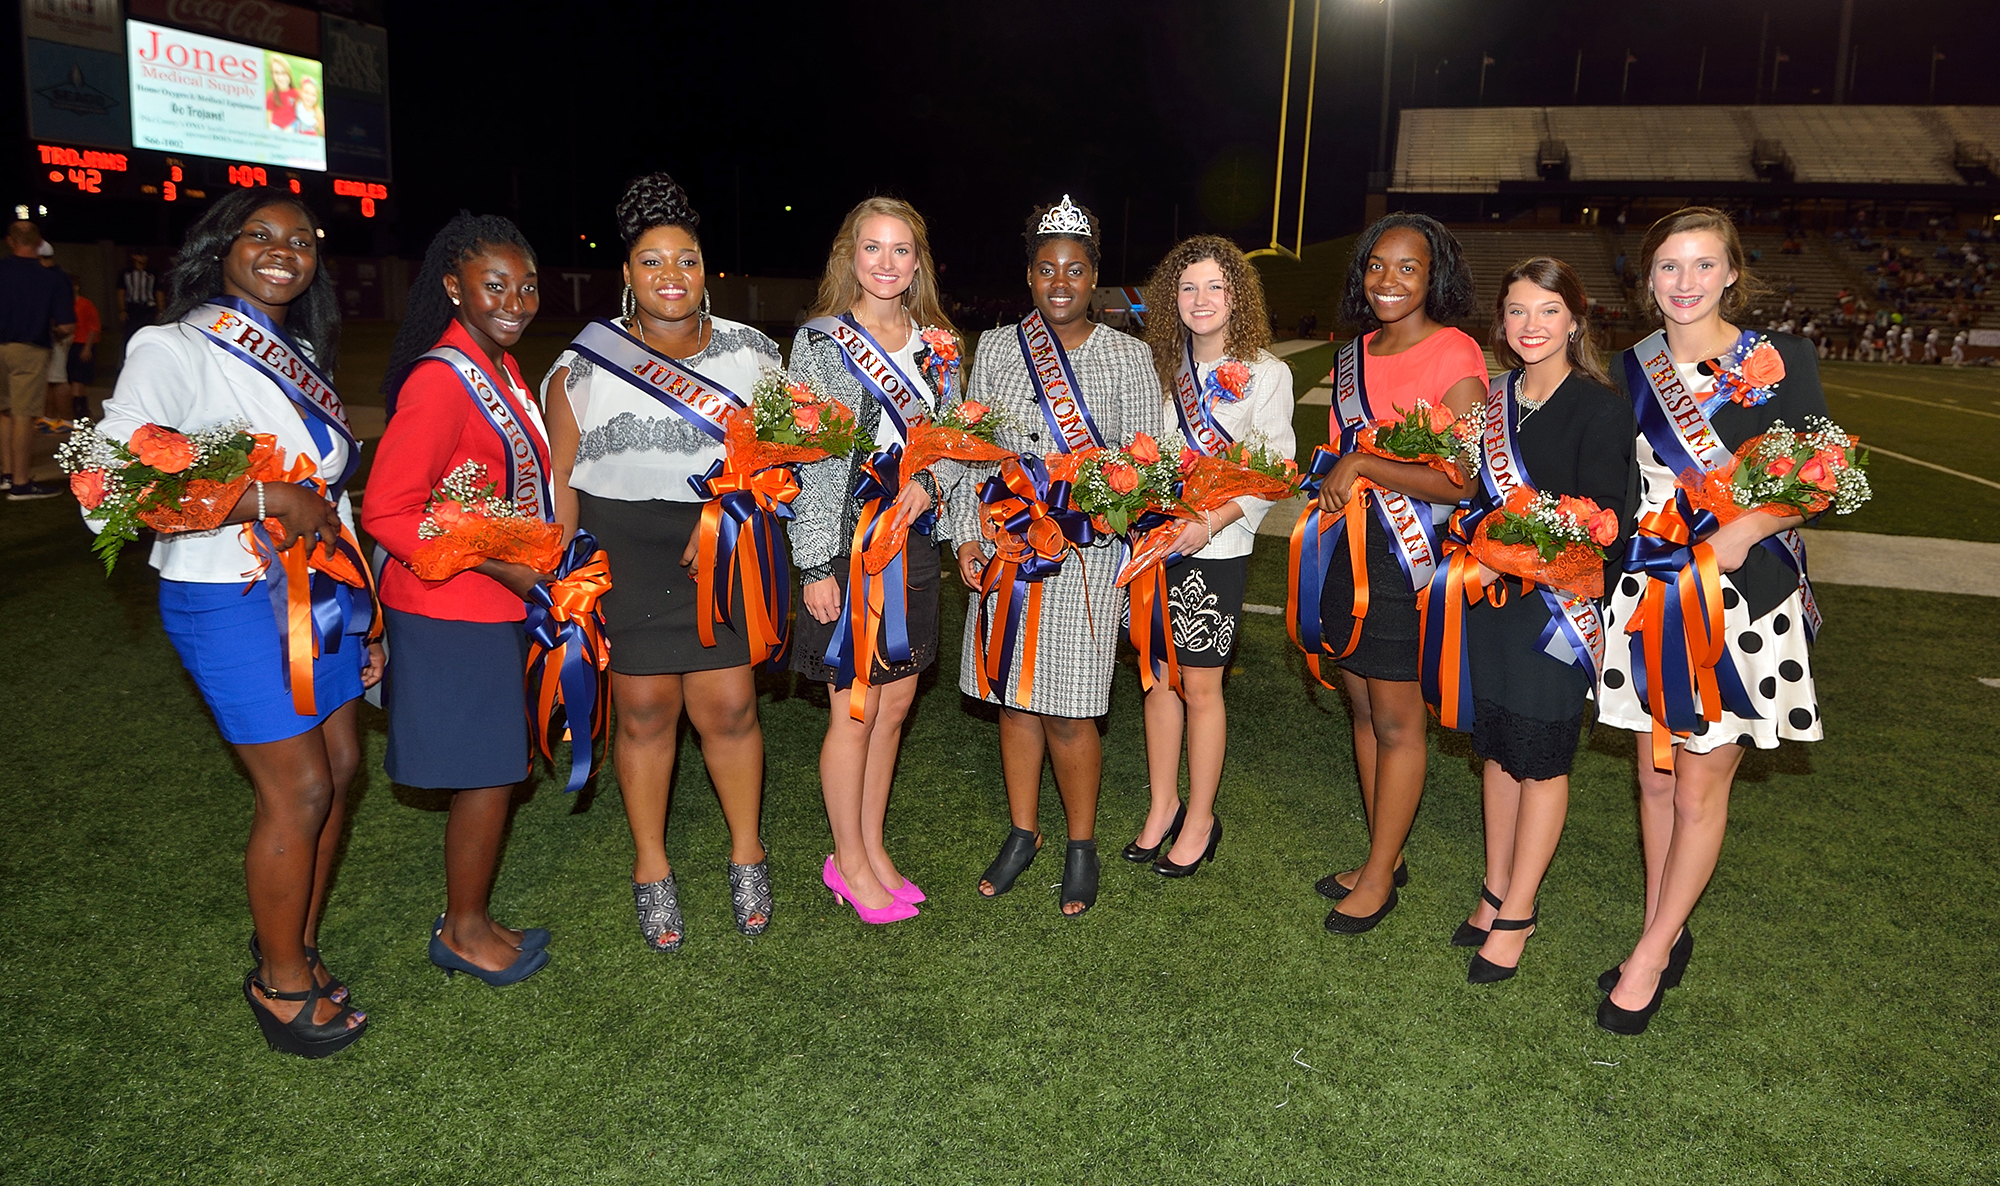 Members of the 2015 CHHS Homecoming Court include, from left, Adasia Berry, Zuri Lampley, Jamiya Collins, Bailey Teal, Queen Stormi Wilson, Anna Shay Wasden, Diamond Jordan,, Nelsey Leverette and Tanner Moore. The court was presented during Friday's homecoming game at Veterans Memorial Stadium. (Photo/Thomas Graning)